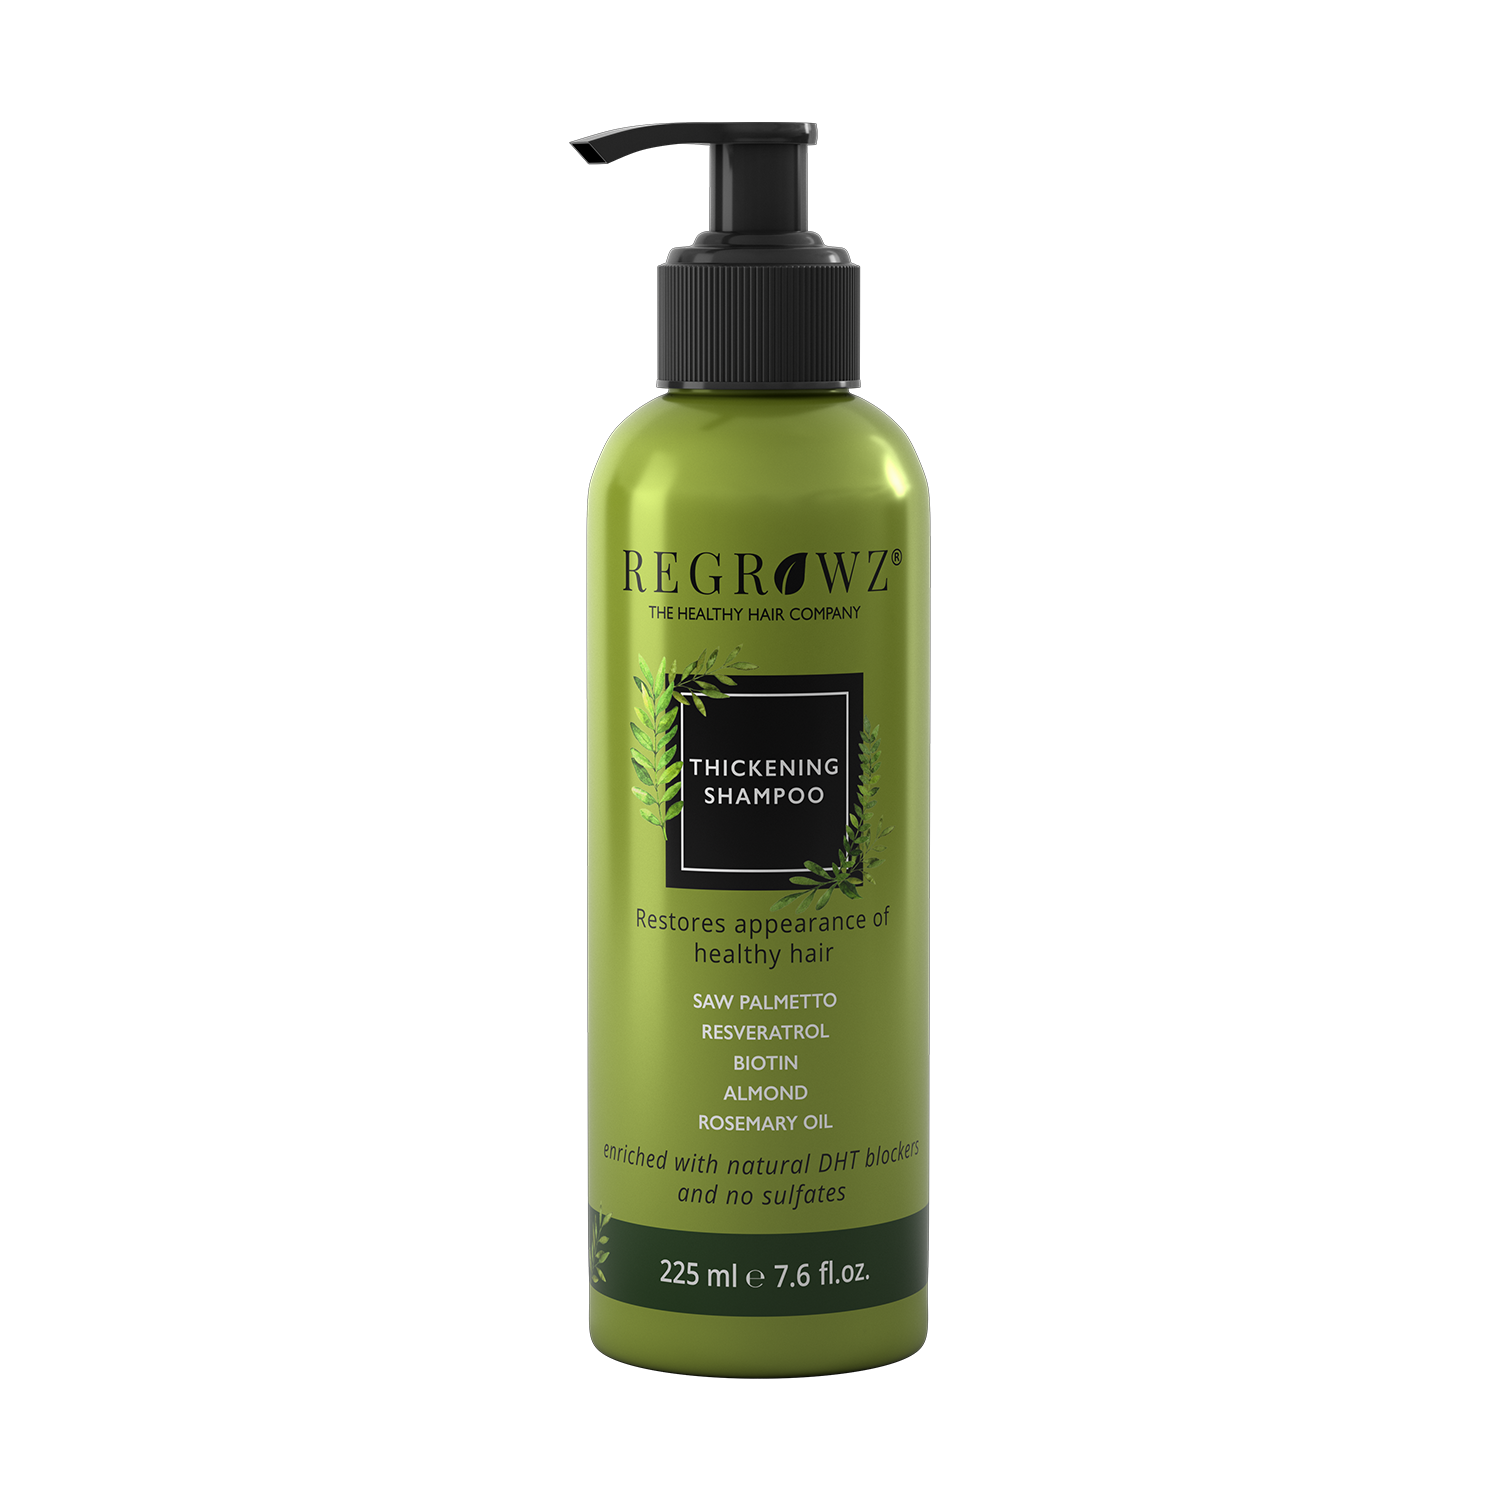 Regrowz Hair thickening shampoo